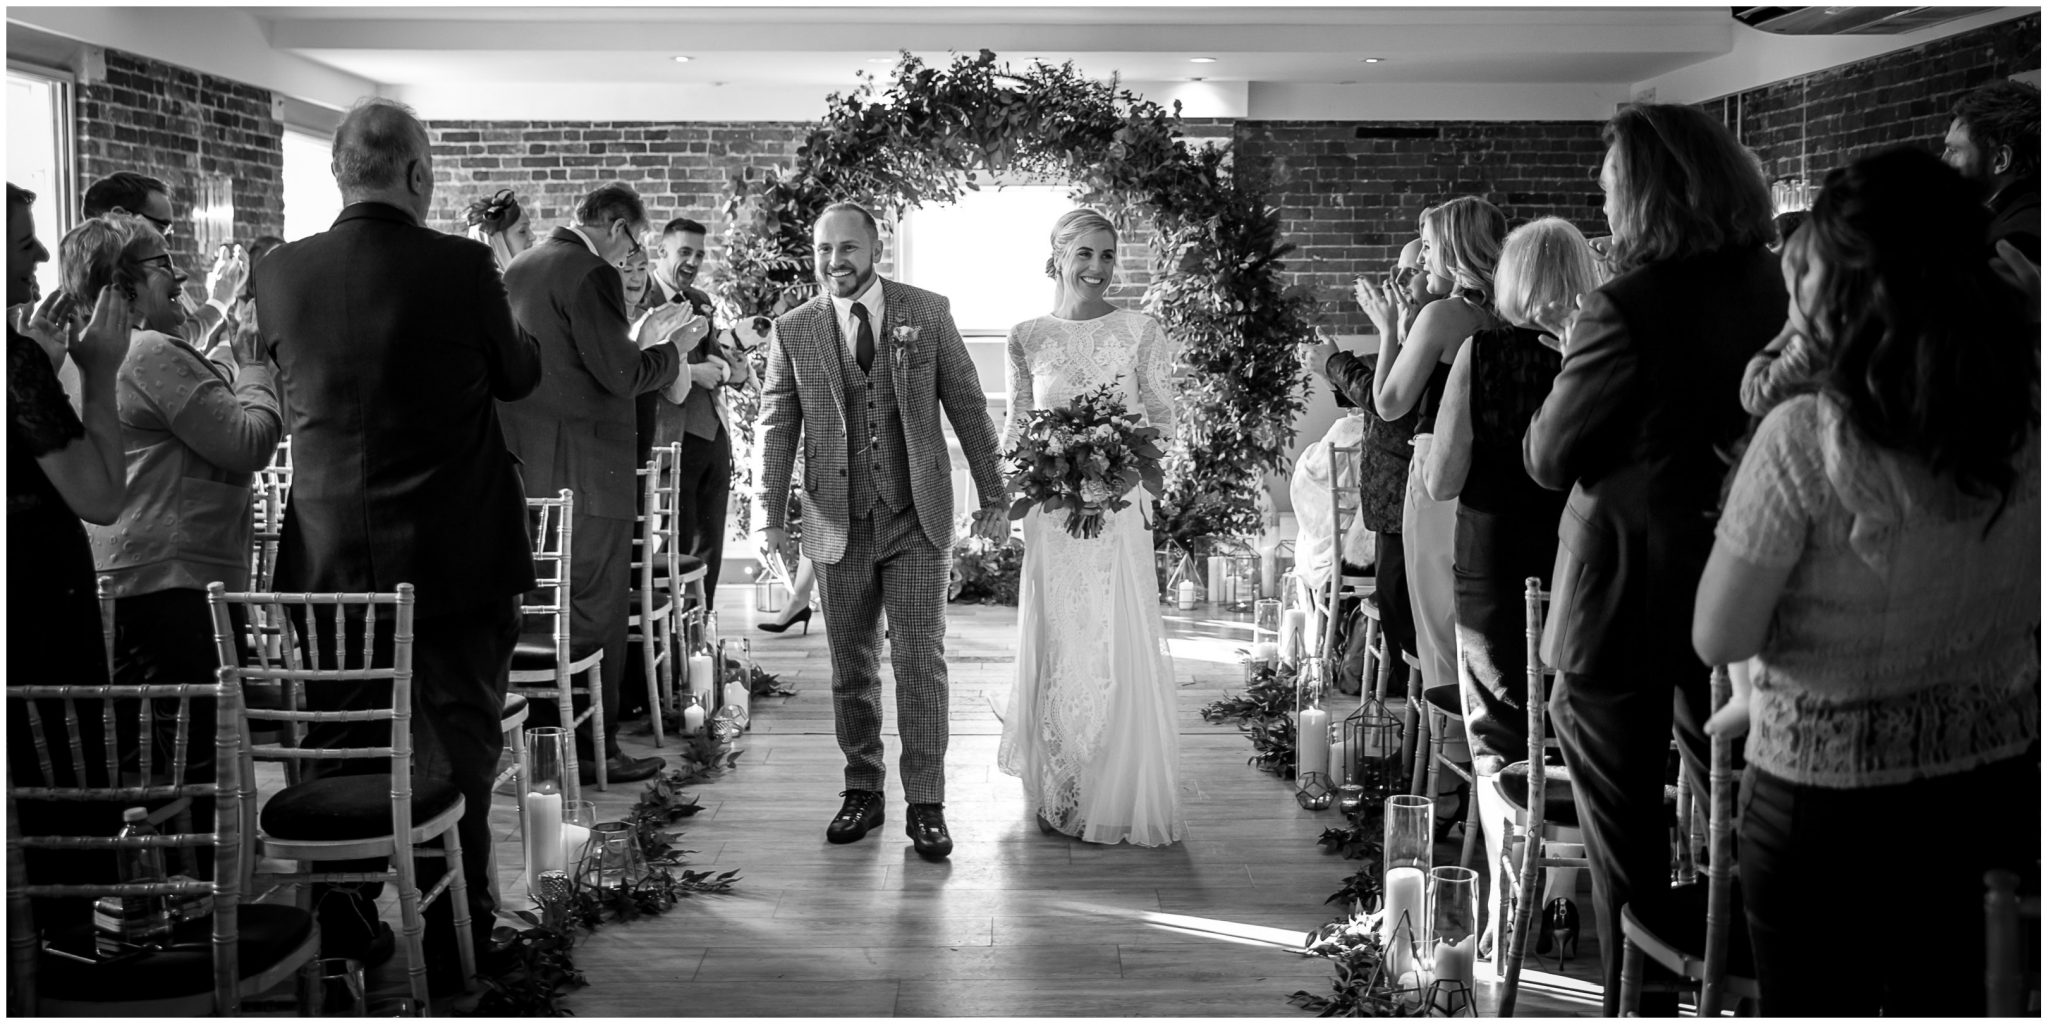 The freshly married couple walk back down the aisle as husband and wife